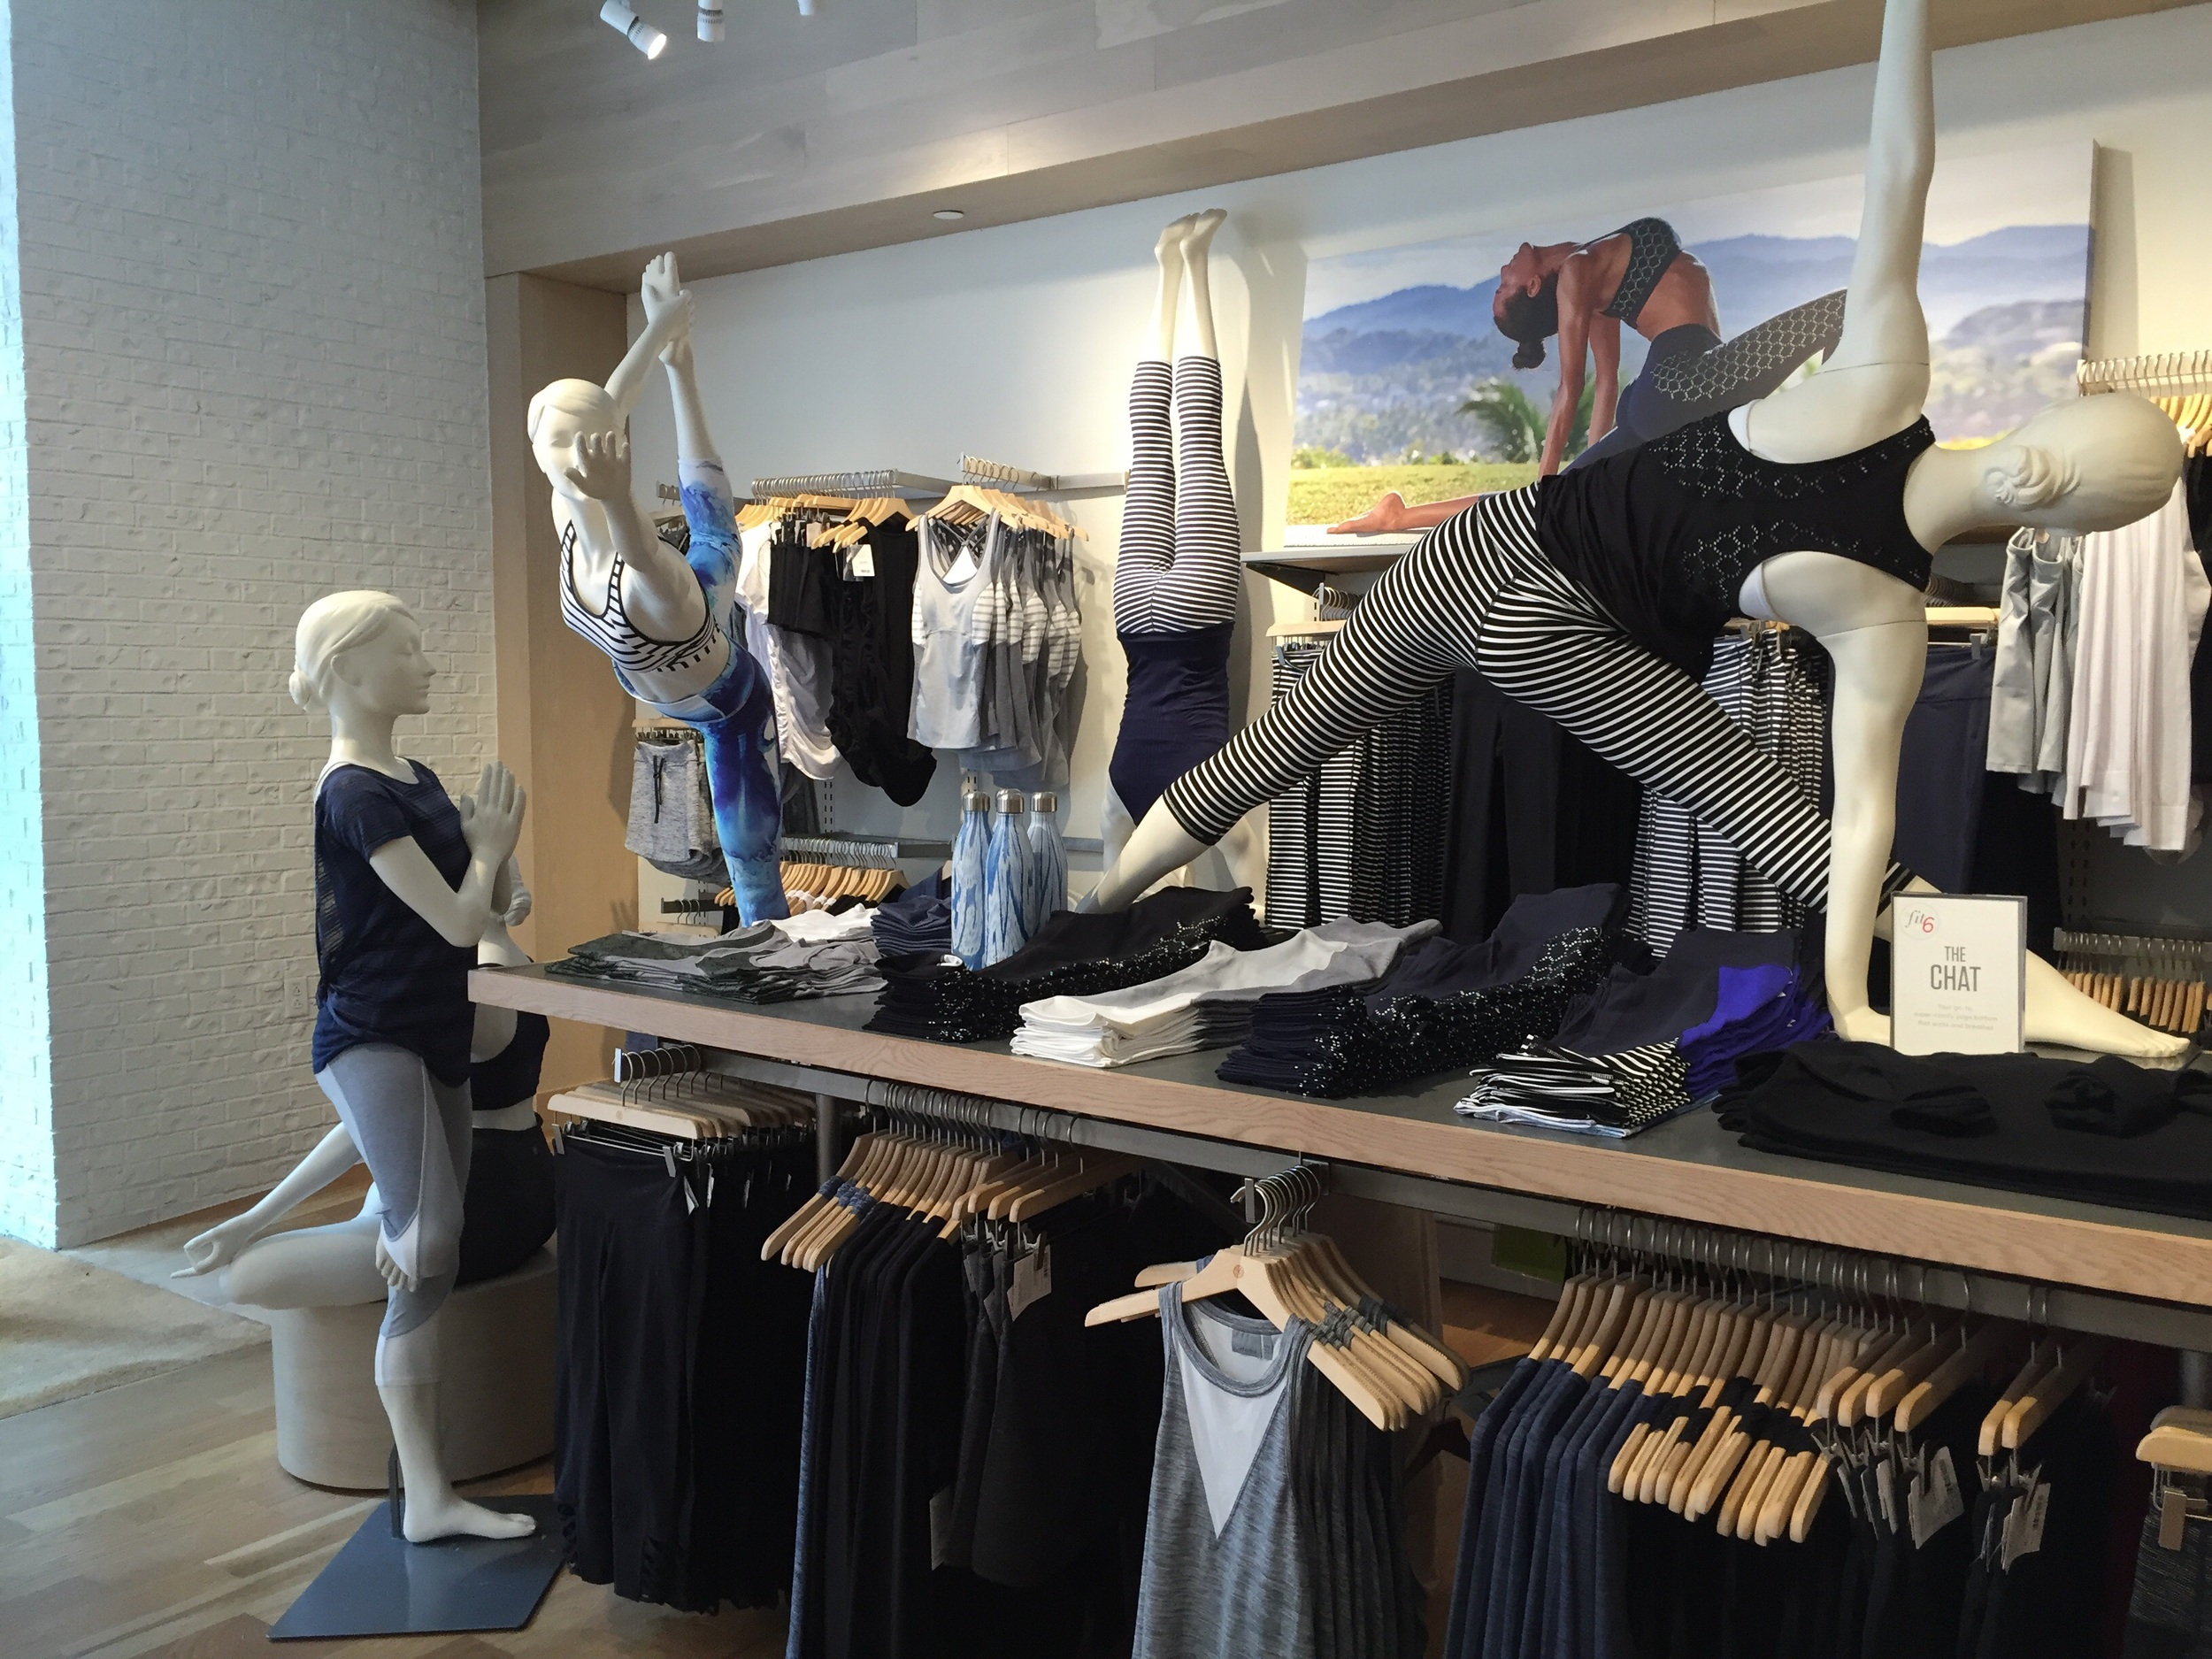 Athleta's well-dressed, well-posed mannequins